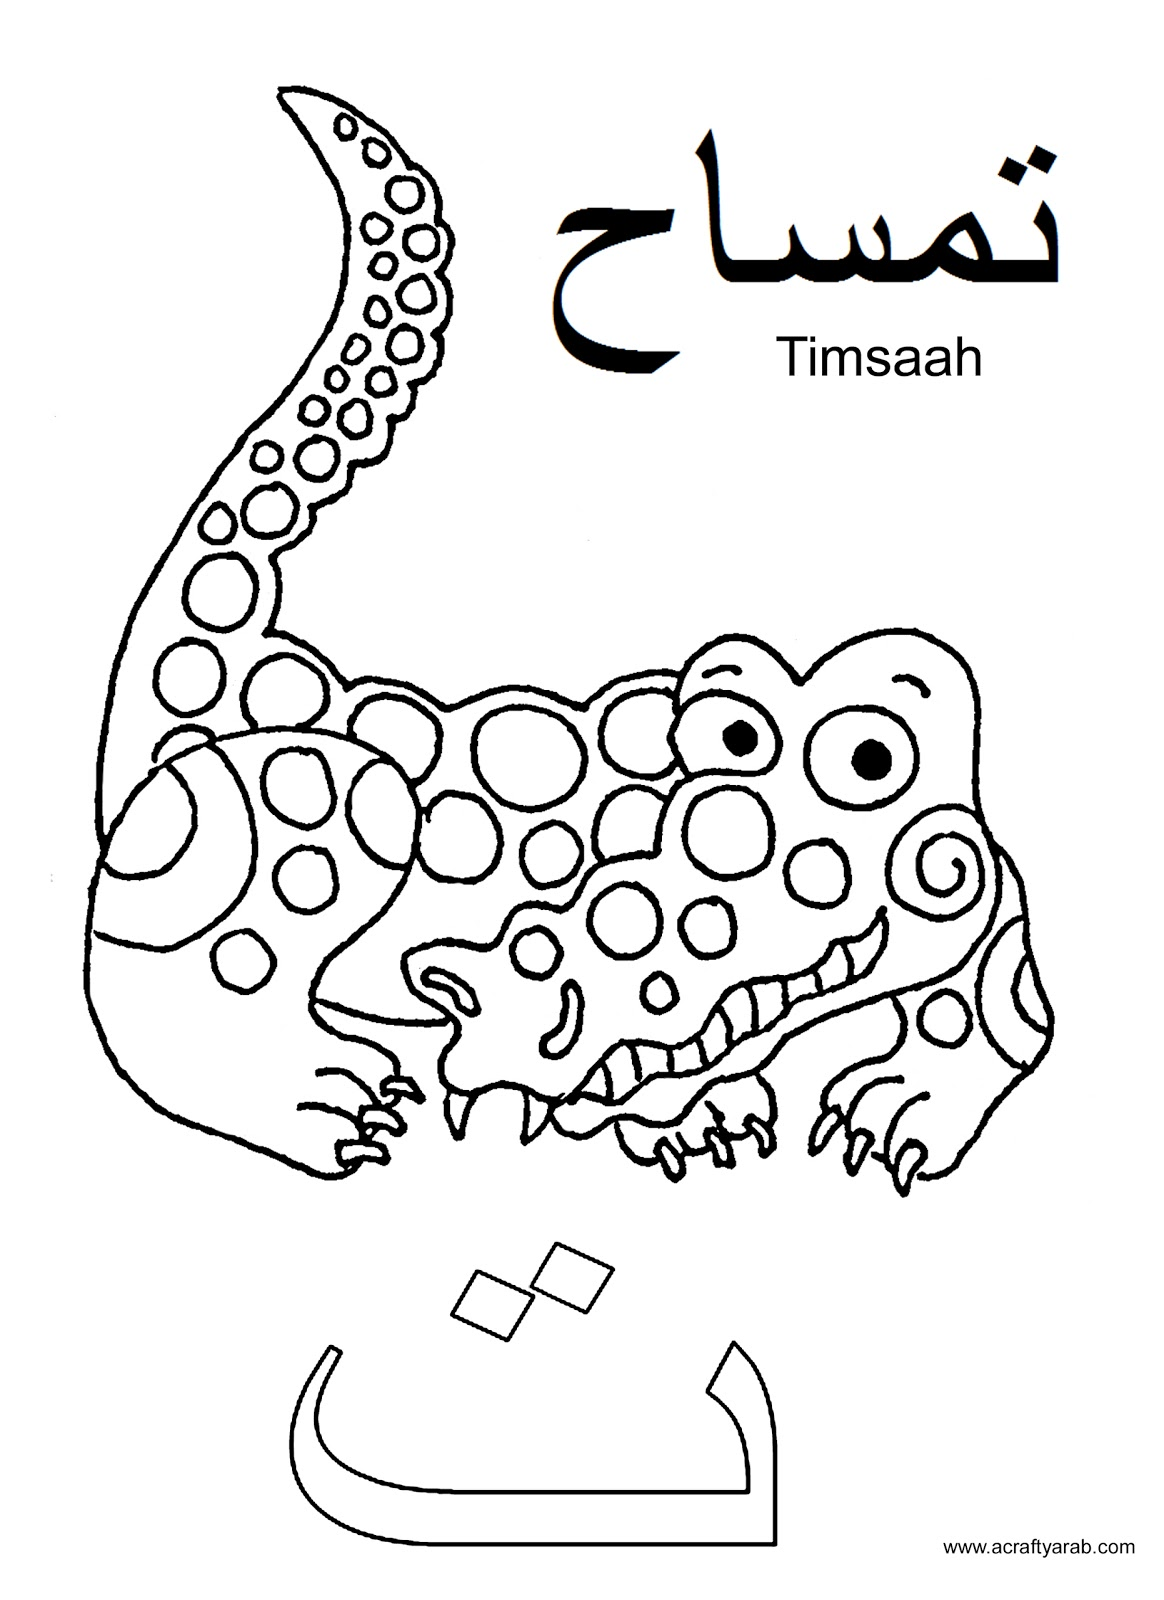 a crafty arab arabic alphabet coloring pages ta is for timsaah. Black Bedroom Furniture Sets. Home Design Ideas